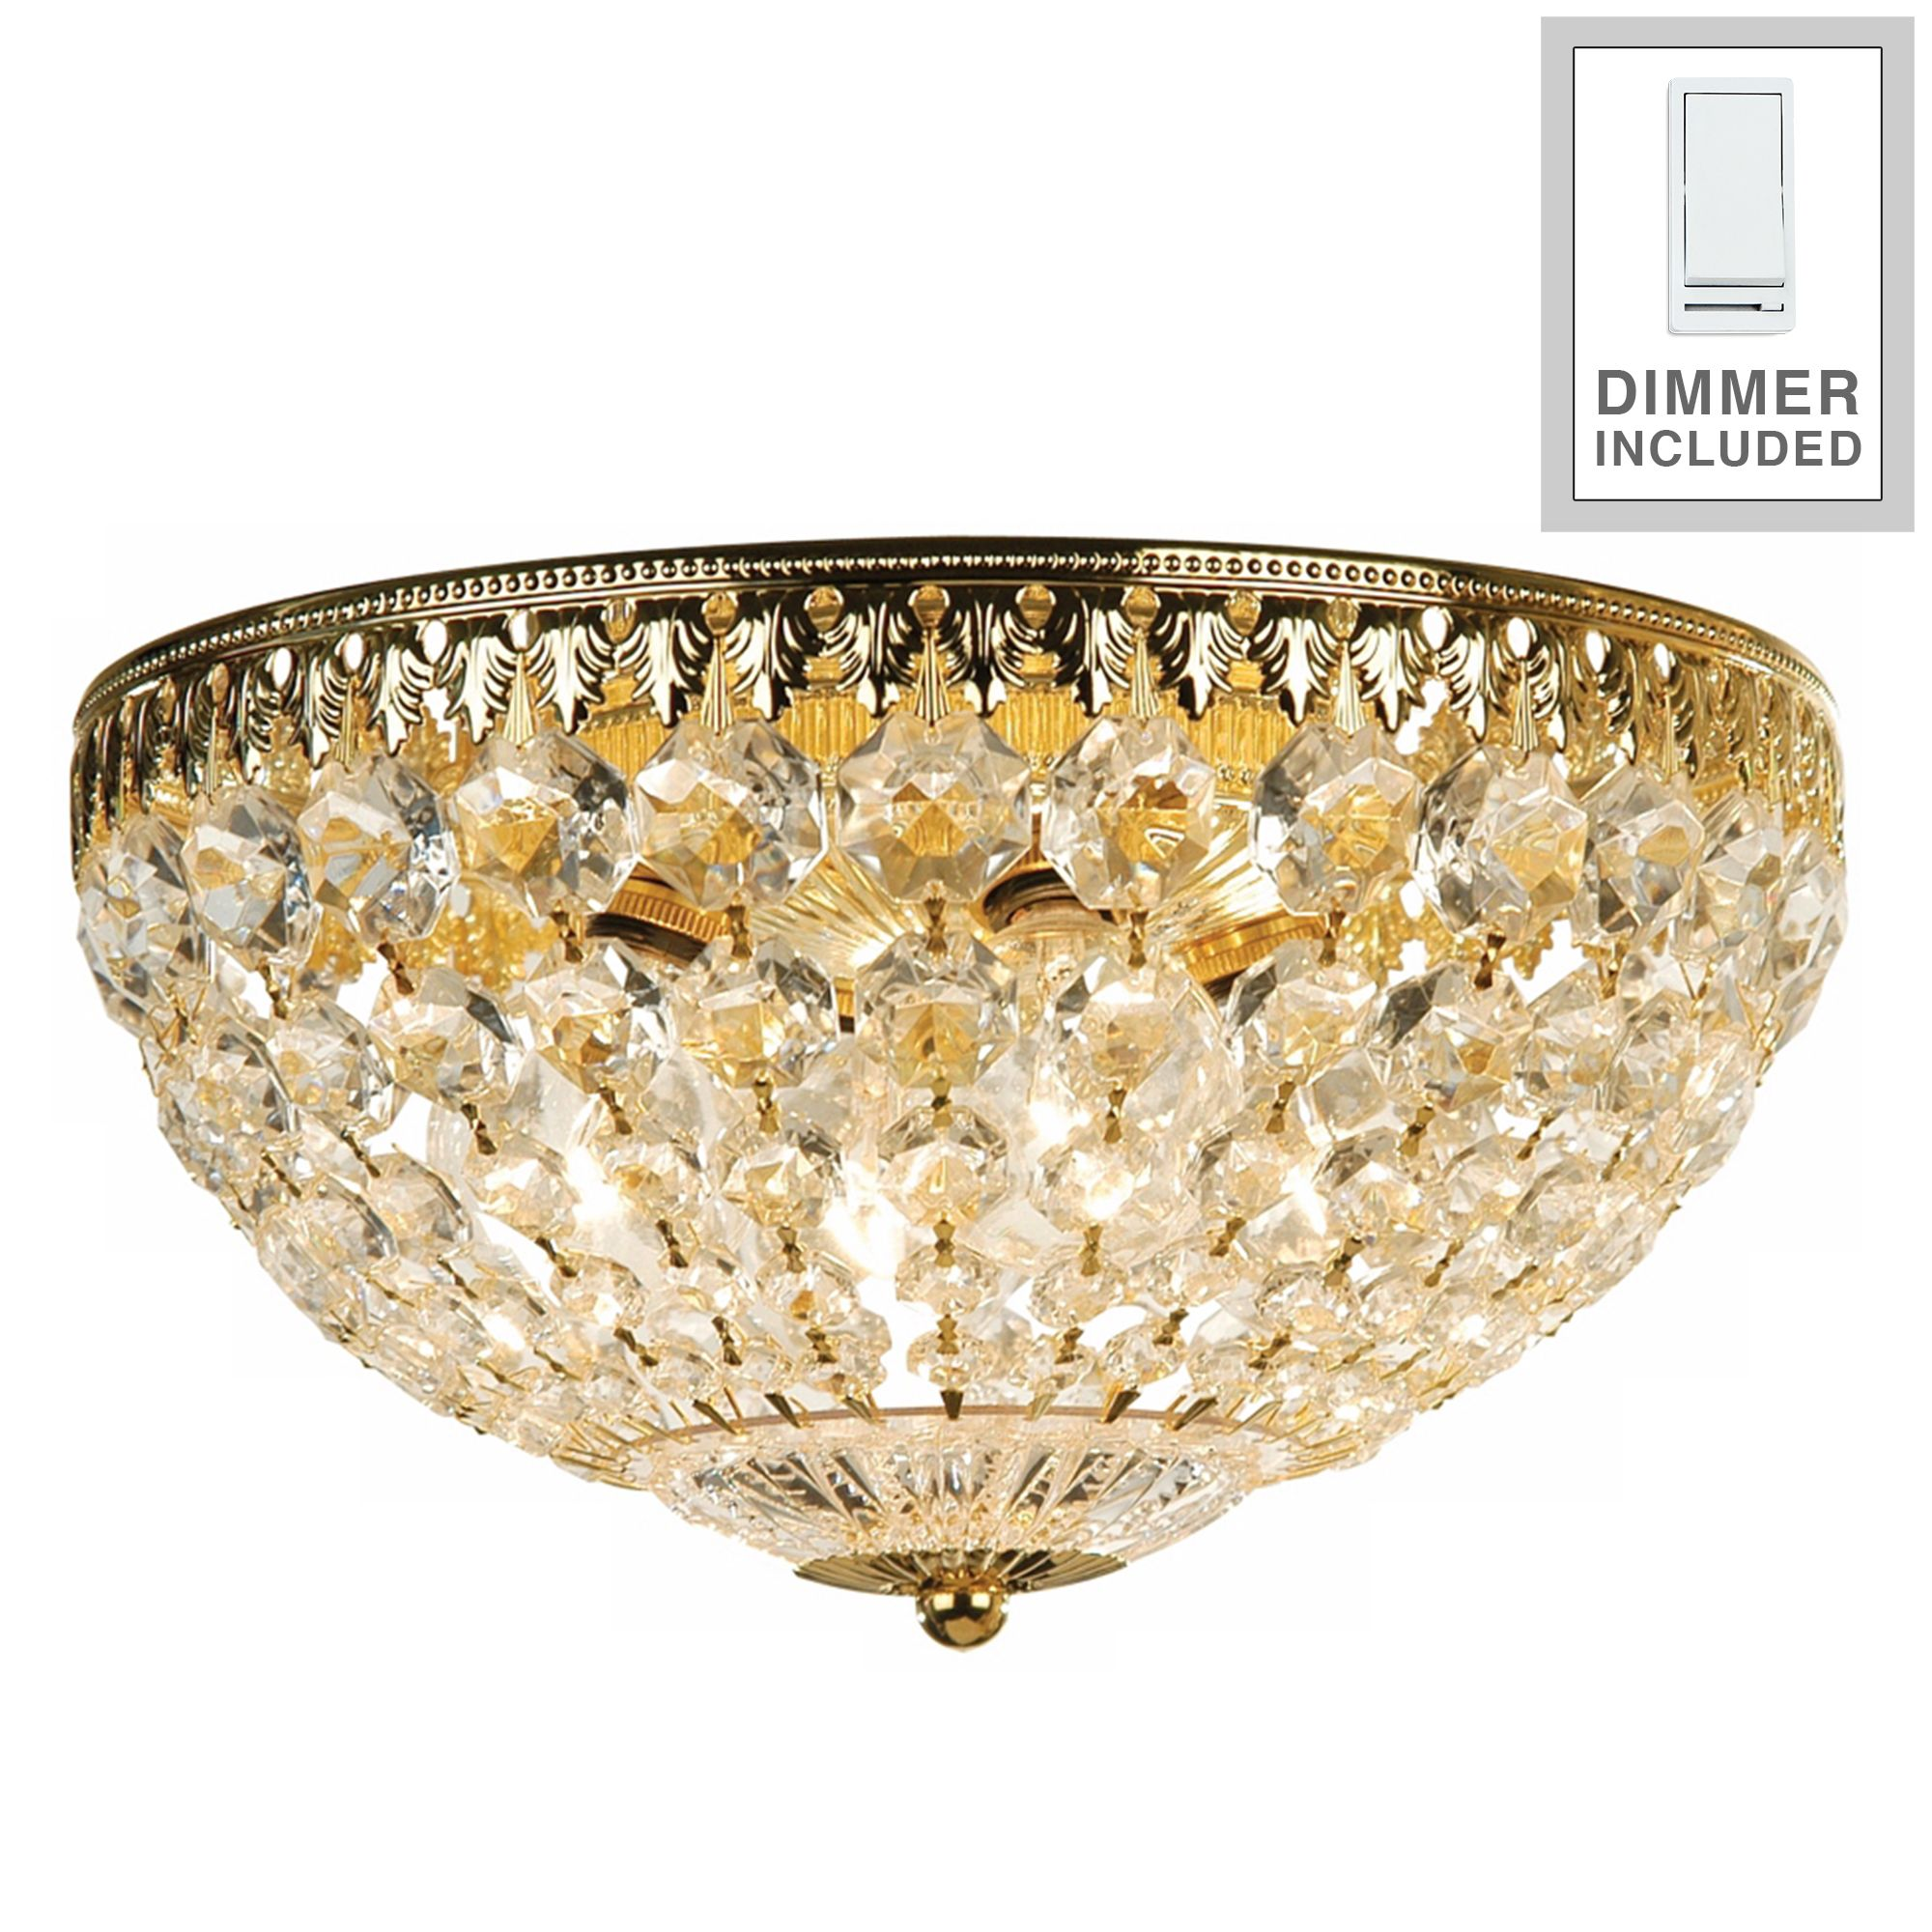 "Schonbek Gold 14"" Wide Crystal Flushmount With Dimmer by Schonbek"